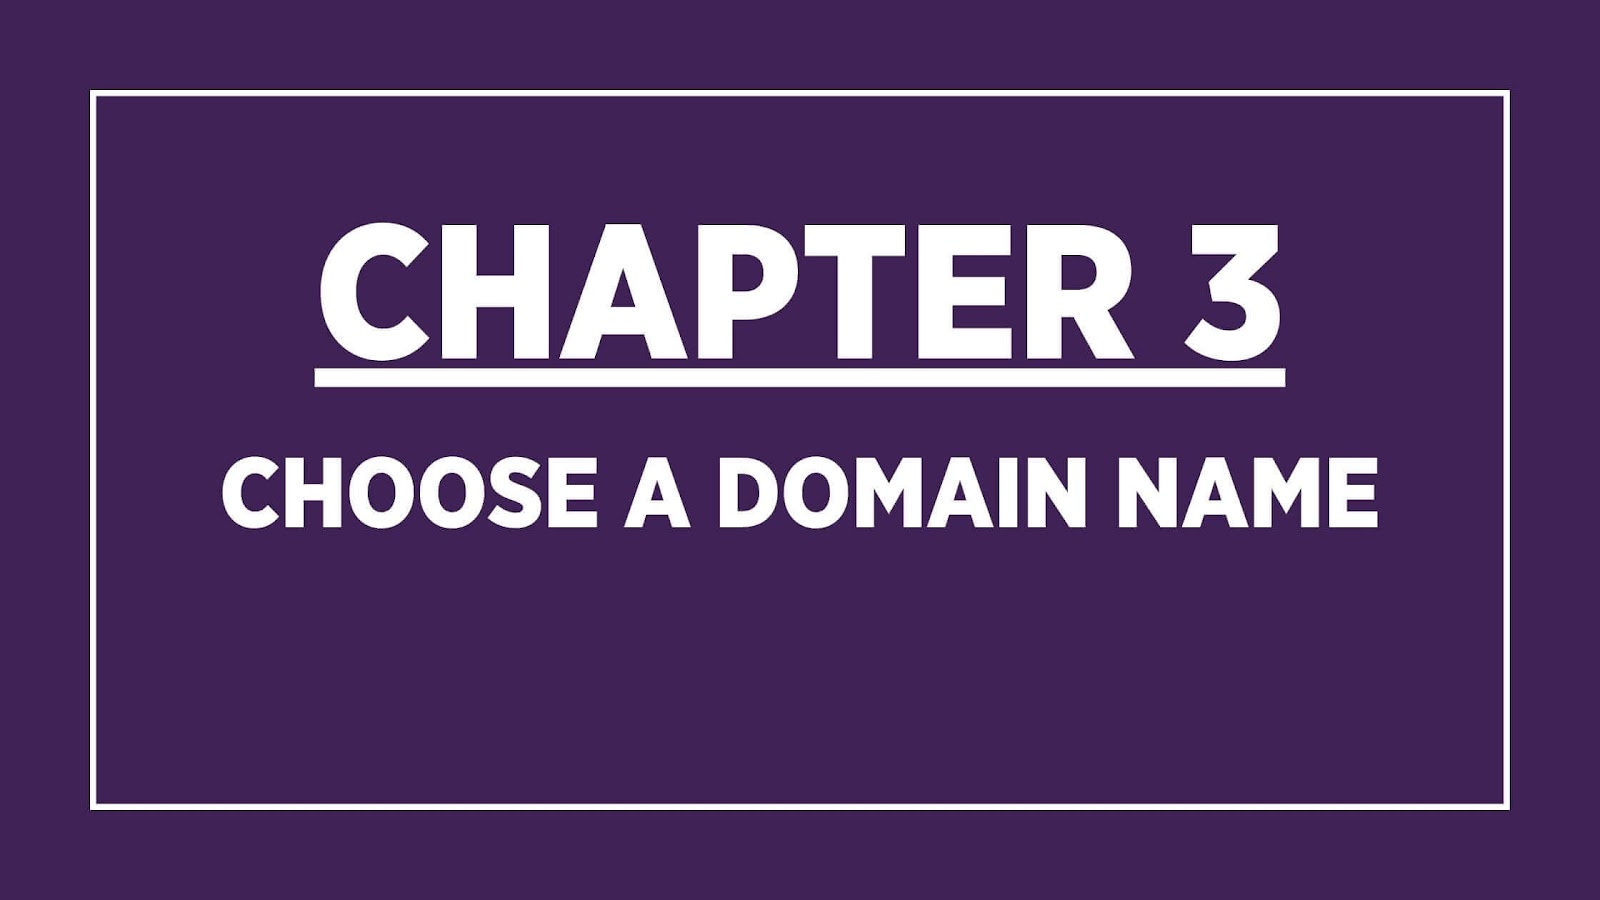 Chapter 3 banner: Choose a domain name